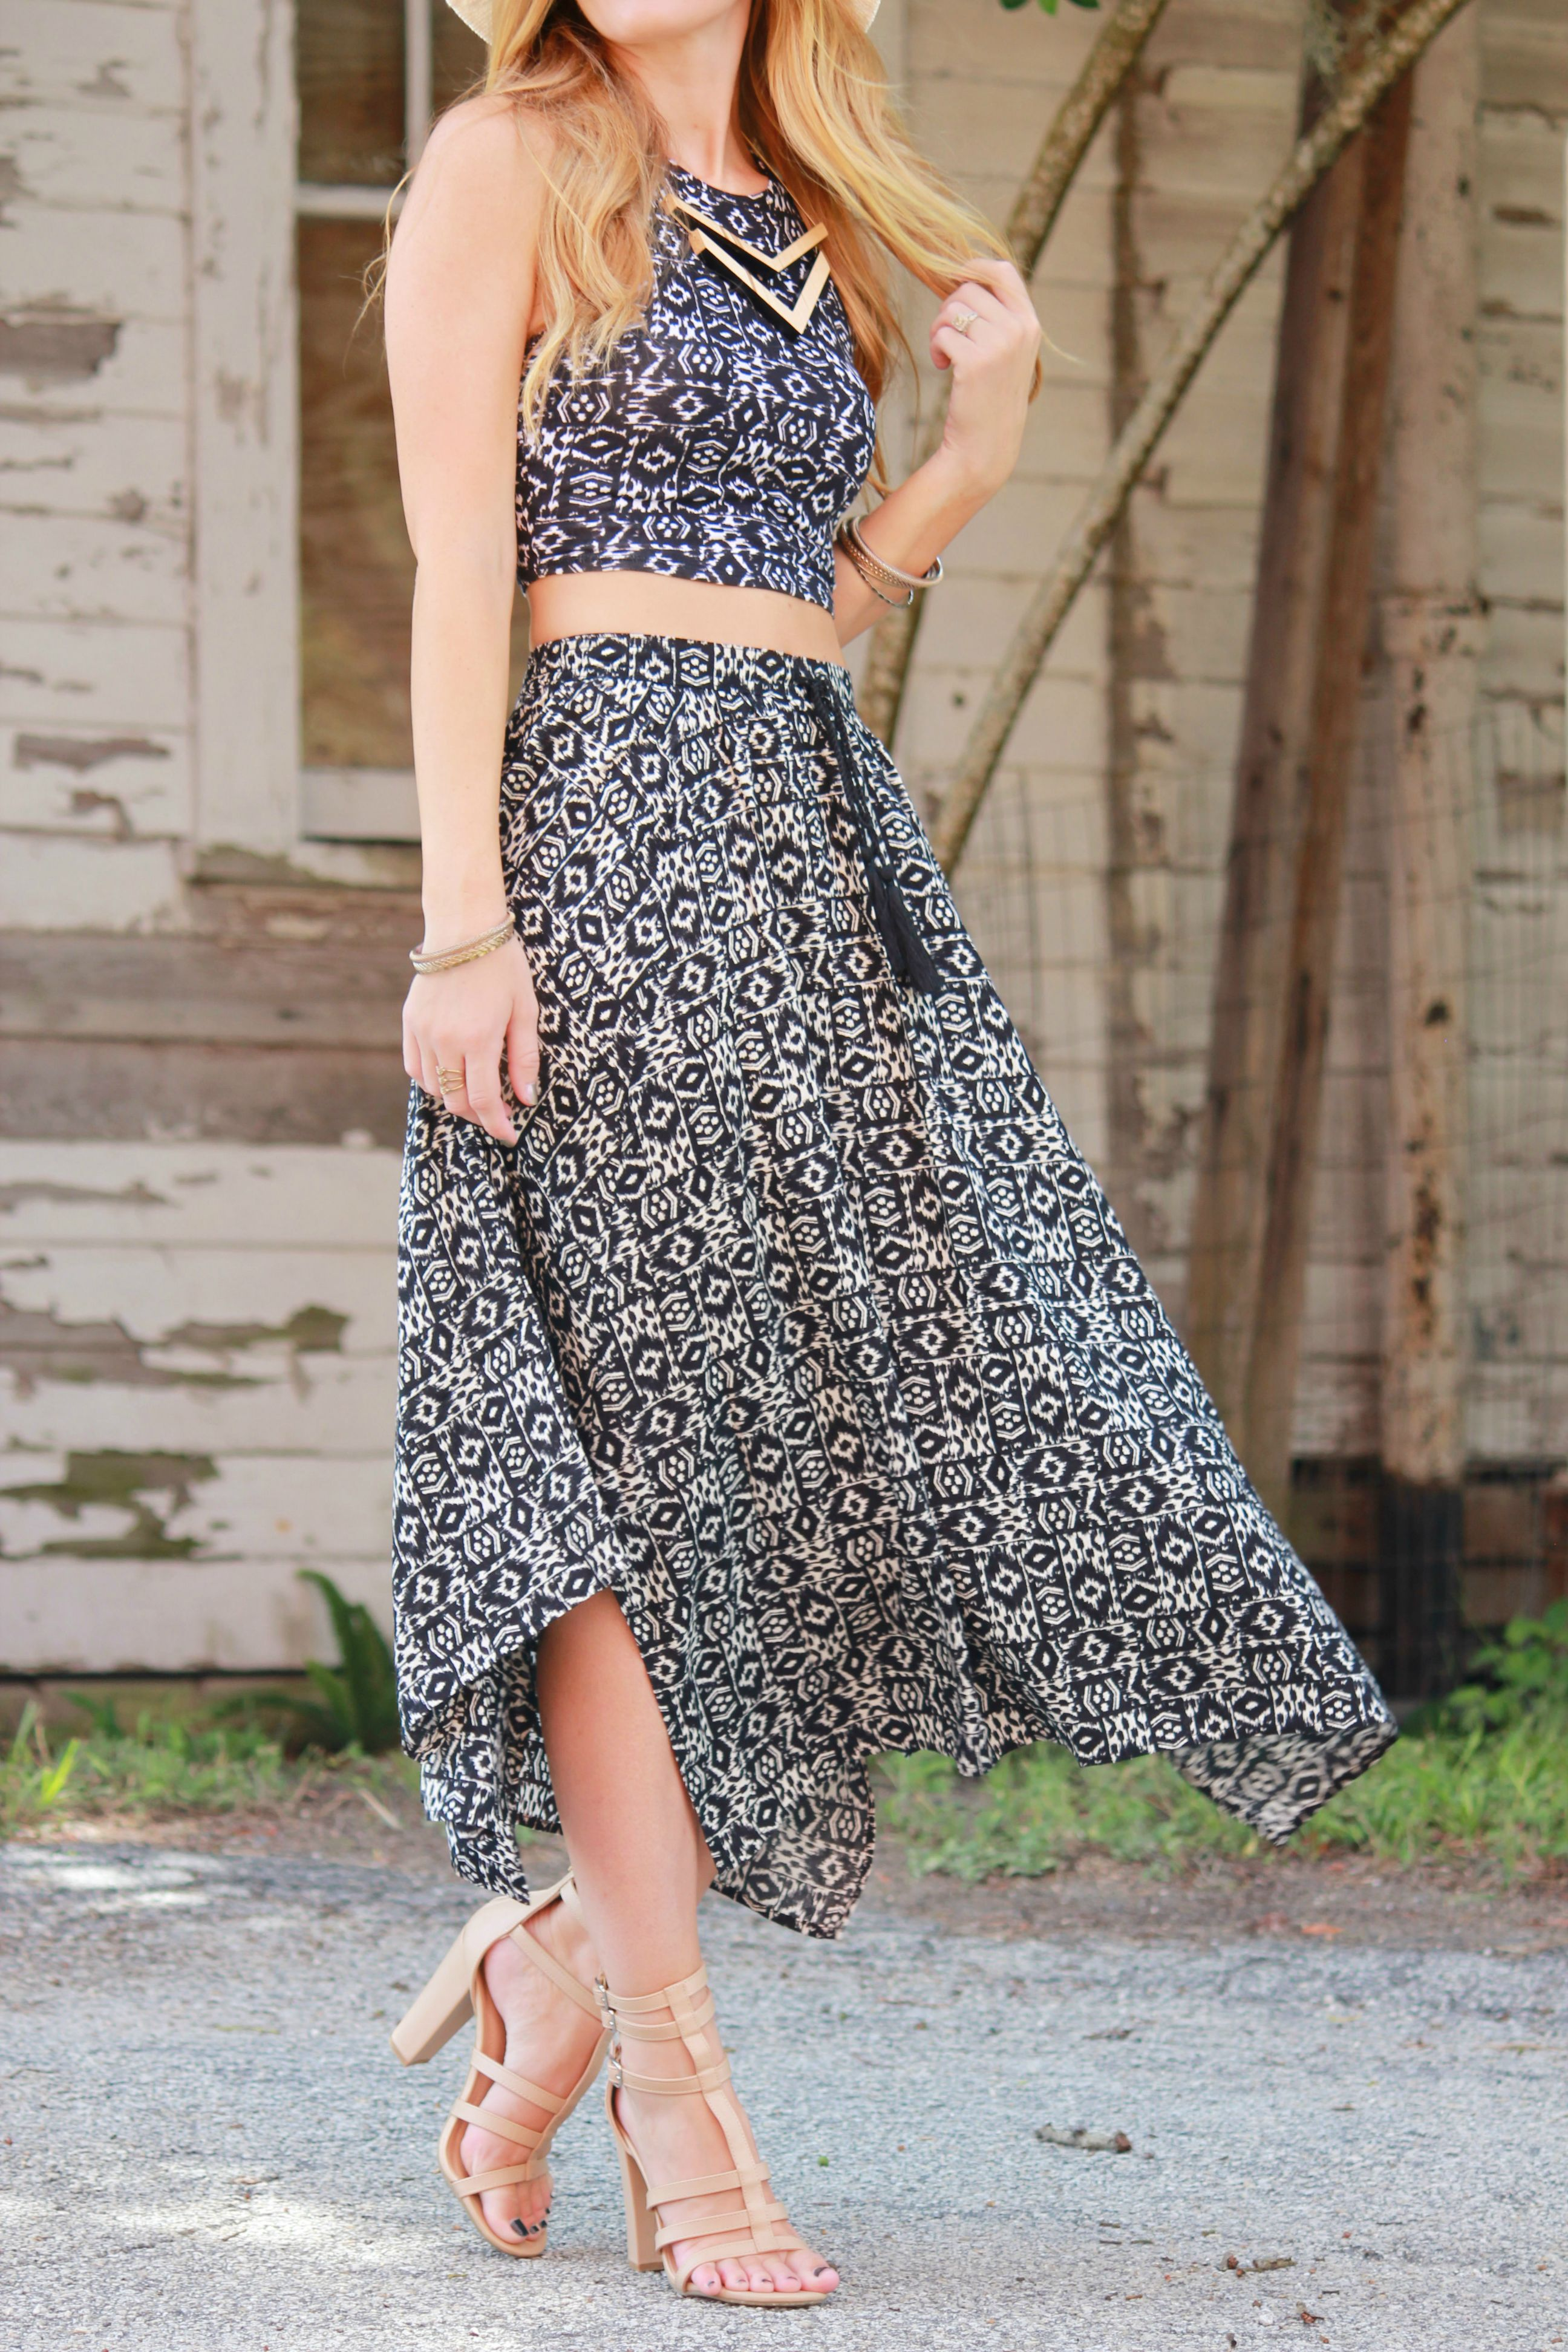 hollister top, hollister skirt, matching separates, Boho Chic outfit, bohemian outfit, aztec print skirt, pacsun hat, kendall and kylie pacsun, bound necklace